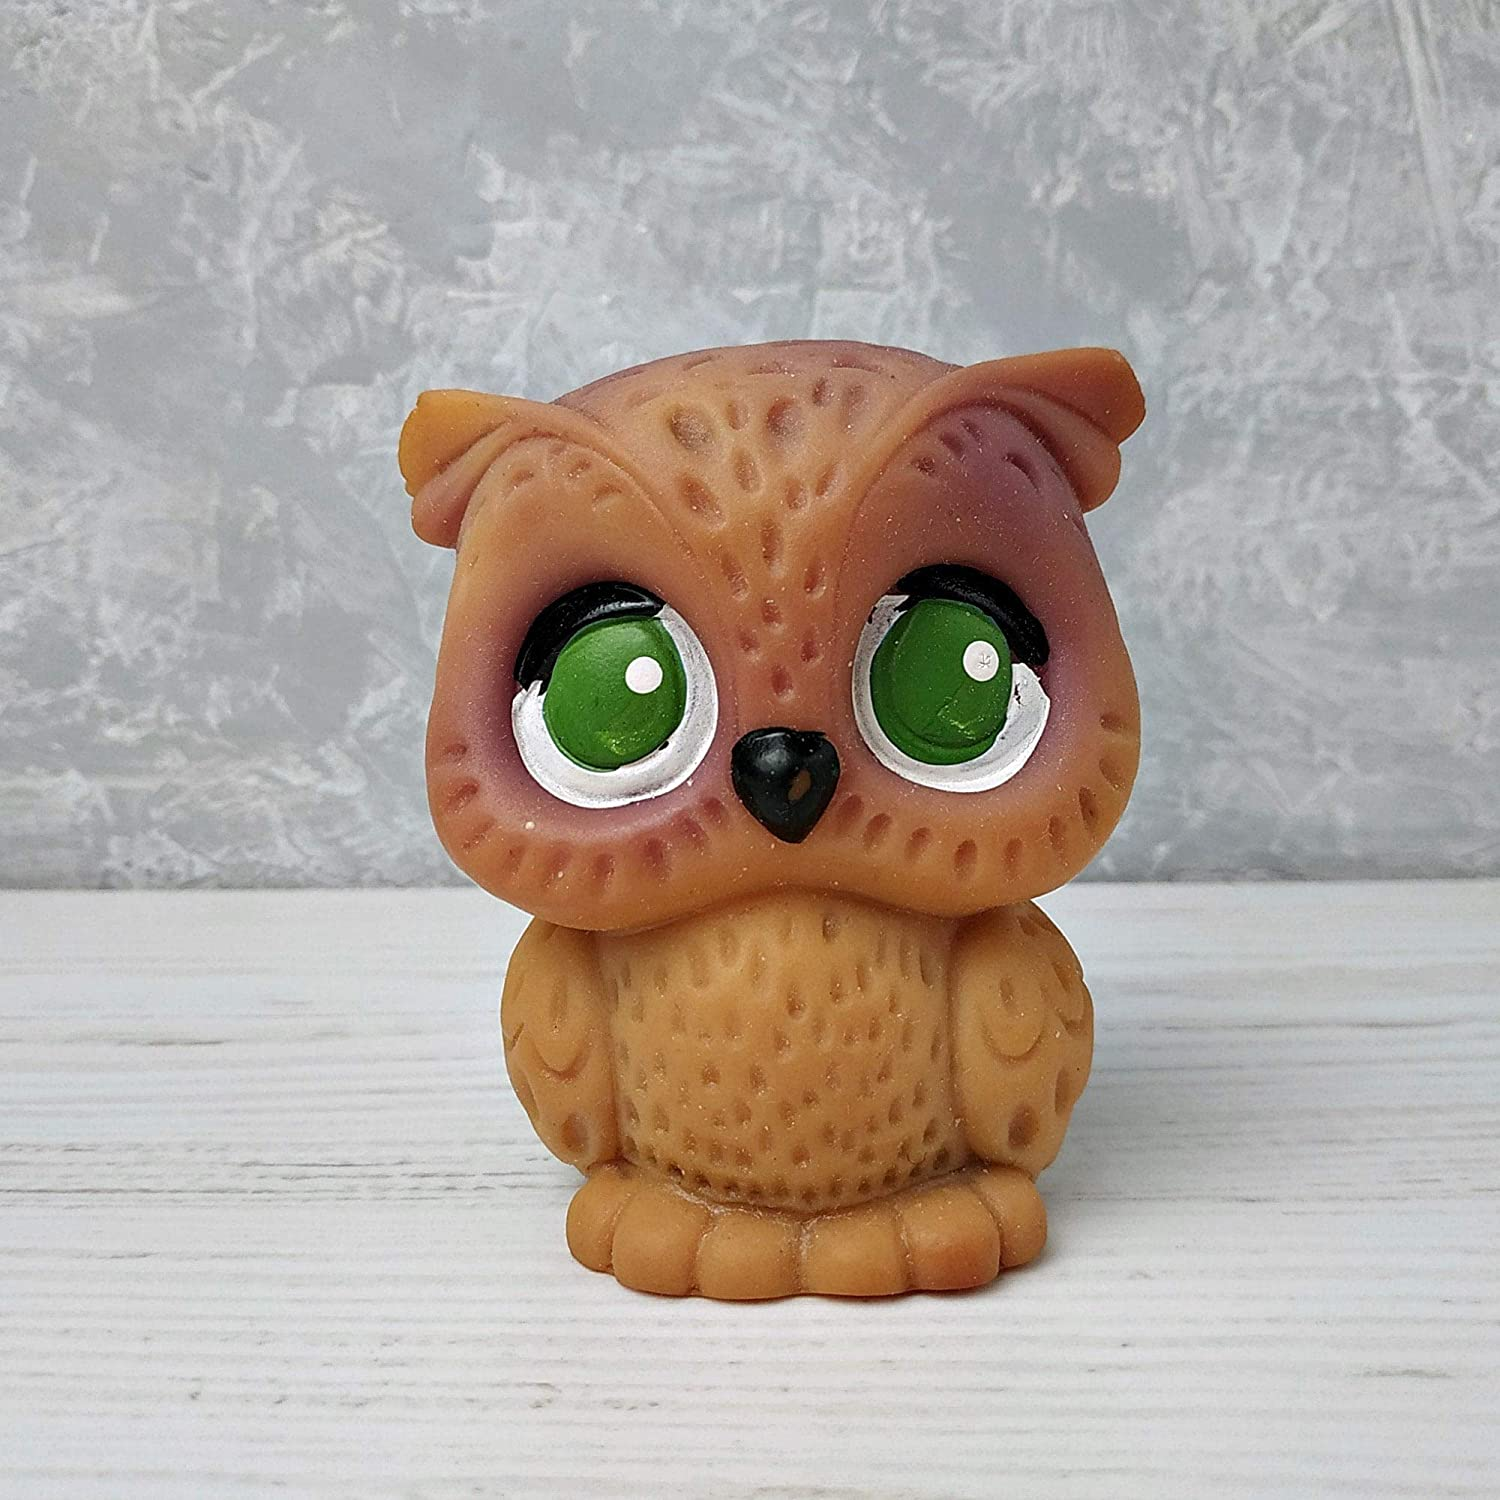 Owls rubber Soviet vintage toy Childs Rubber Squeaky Kids Toys Beige Animal 1970s Gift for Baby Lovers of owl Retro Russia Collectible Toy